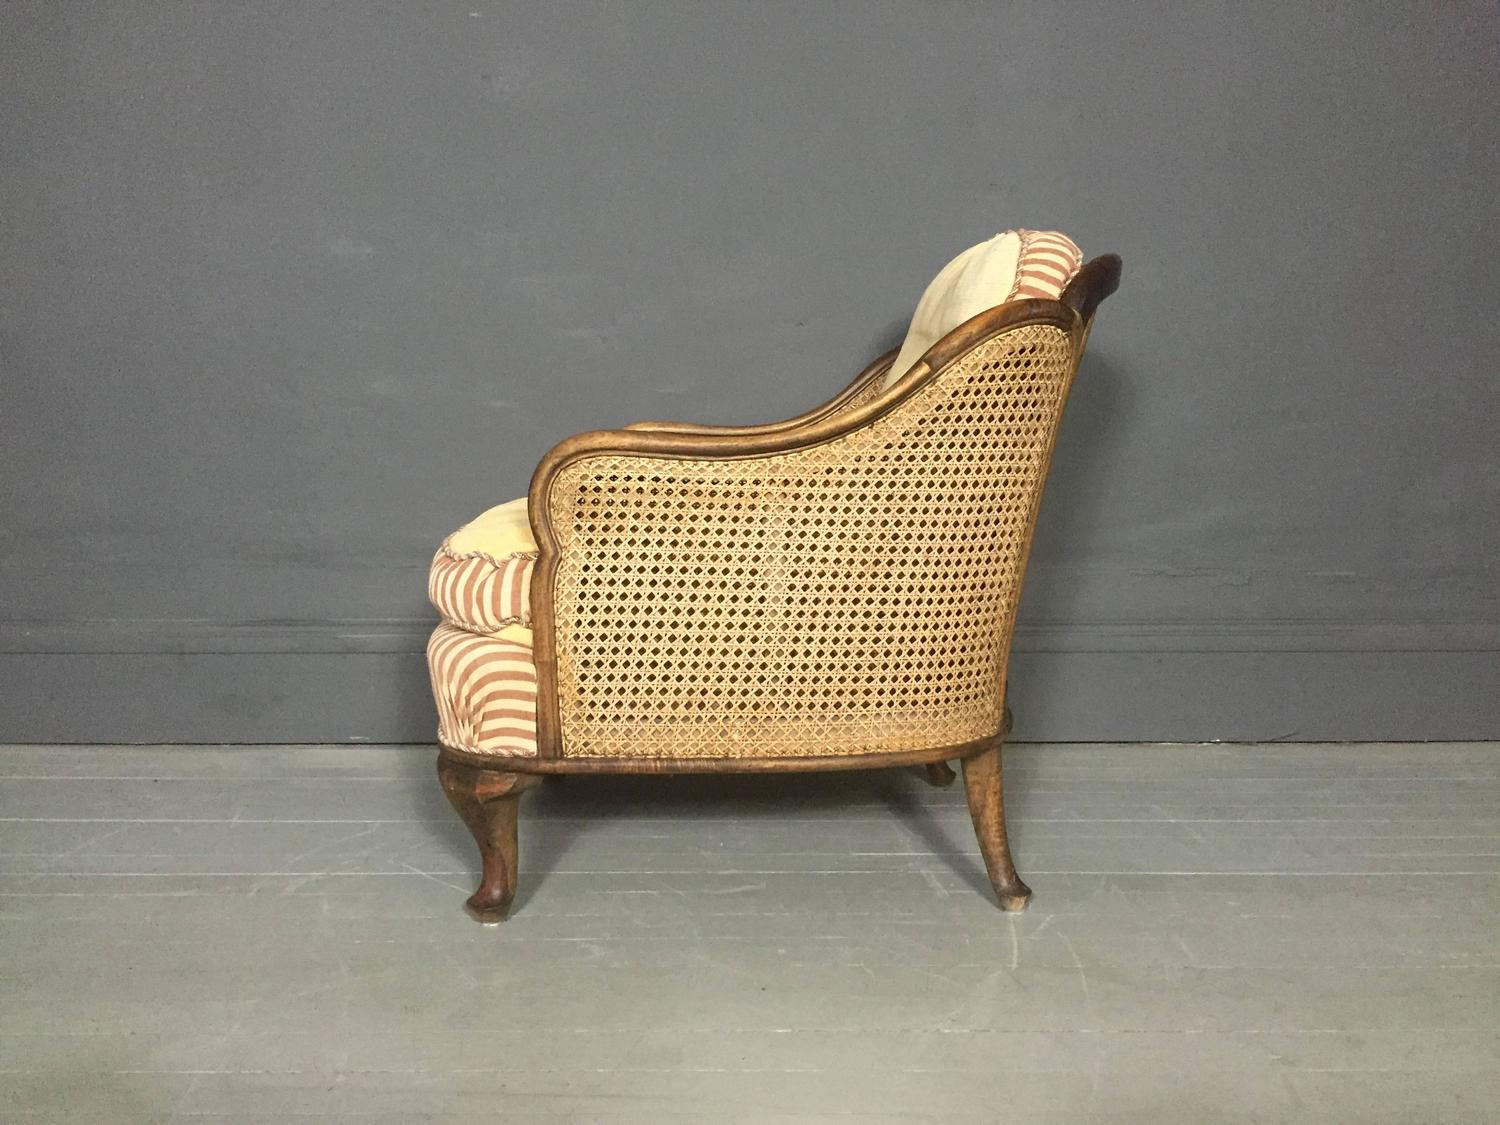 1930 cane back sofa multi purpose bed in bangalore pair of bergere tub chairs walnut and sweden 1930s